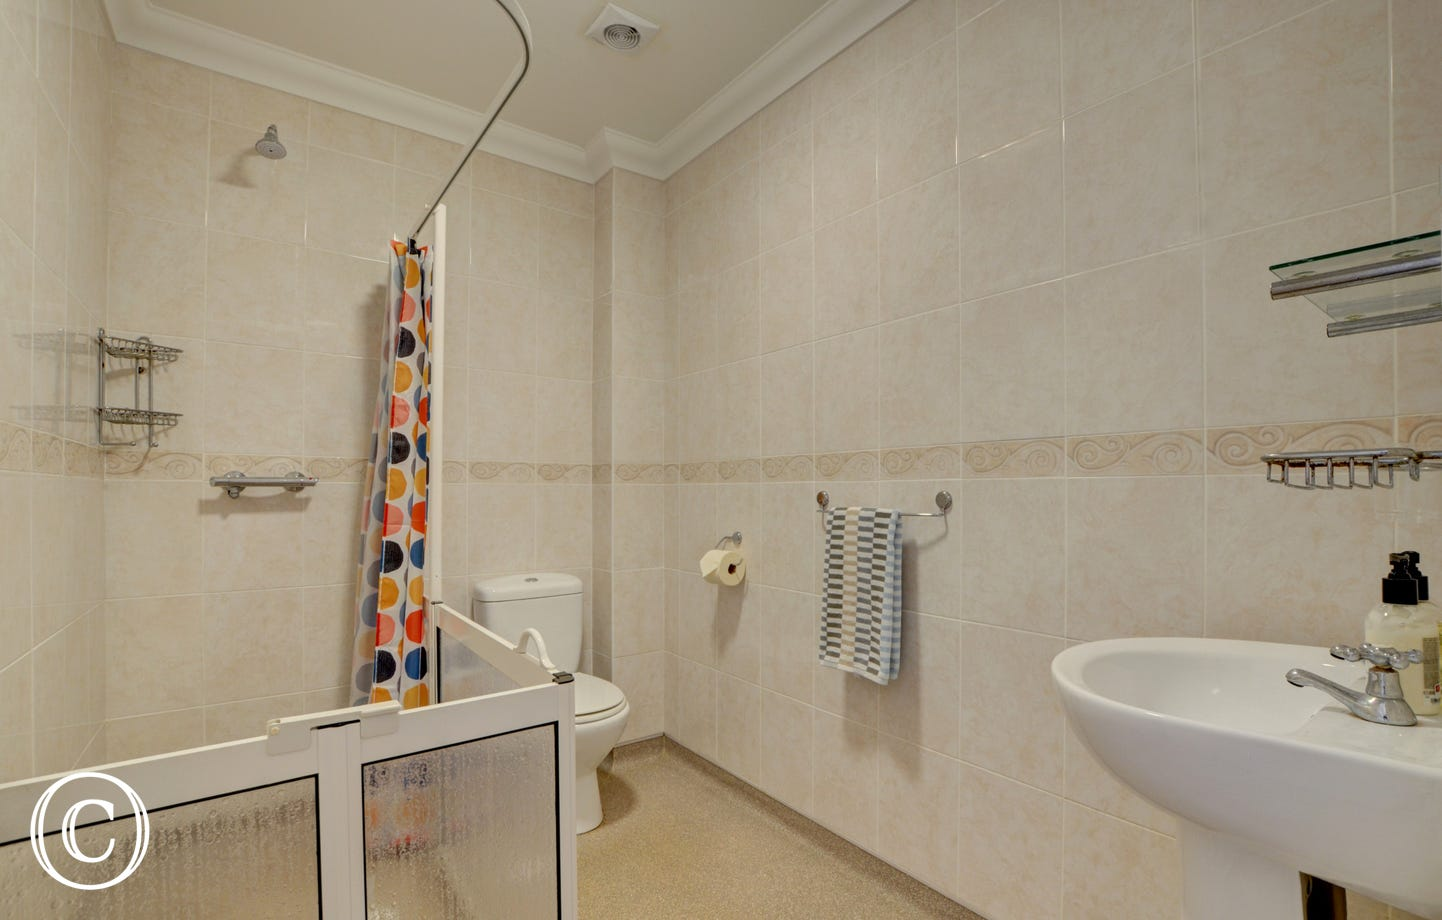 A good sized wet room provides a large level access to power shower in gated enclosure